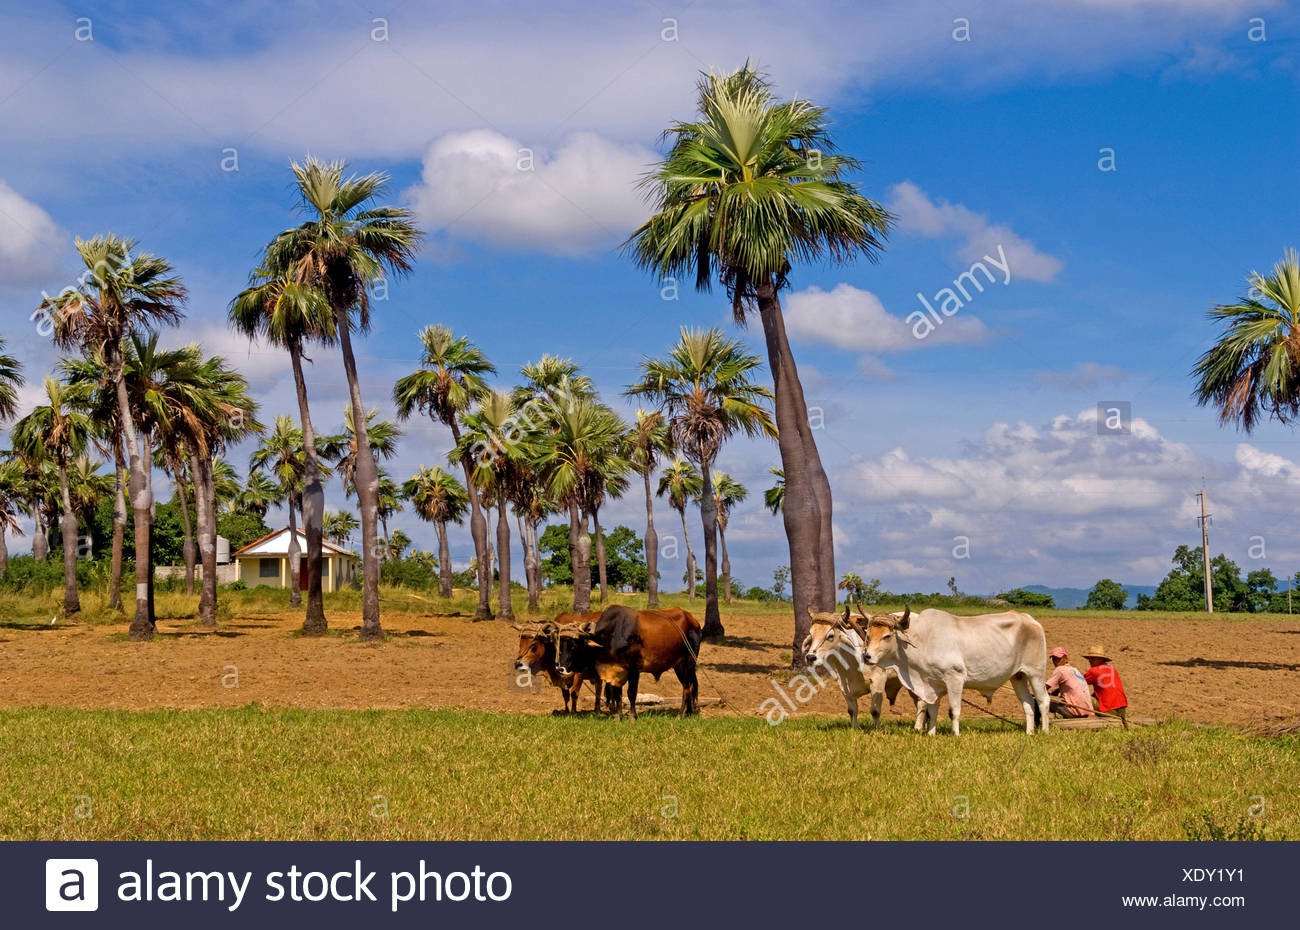 Old fashioned farming in tobacco fields in Sierra del Rosario mountains with oxen ploiwing fields, Cuba, Sierra del Rosario - Stock Image